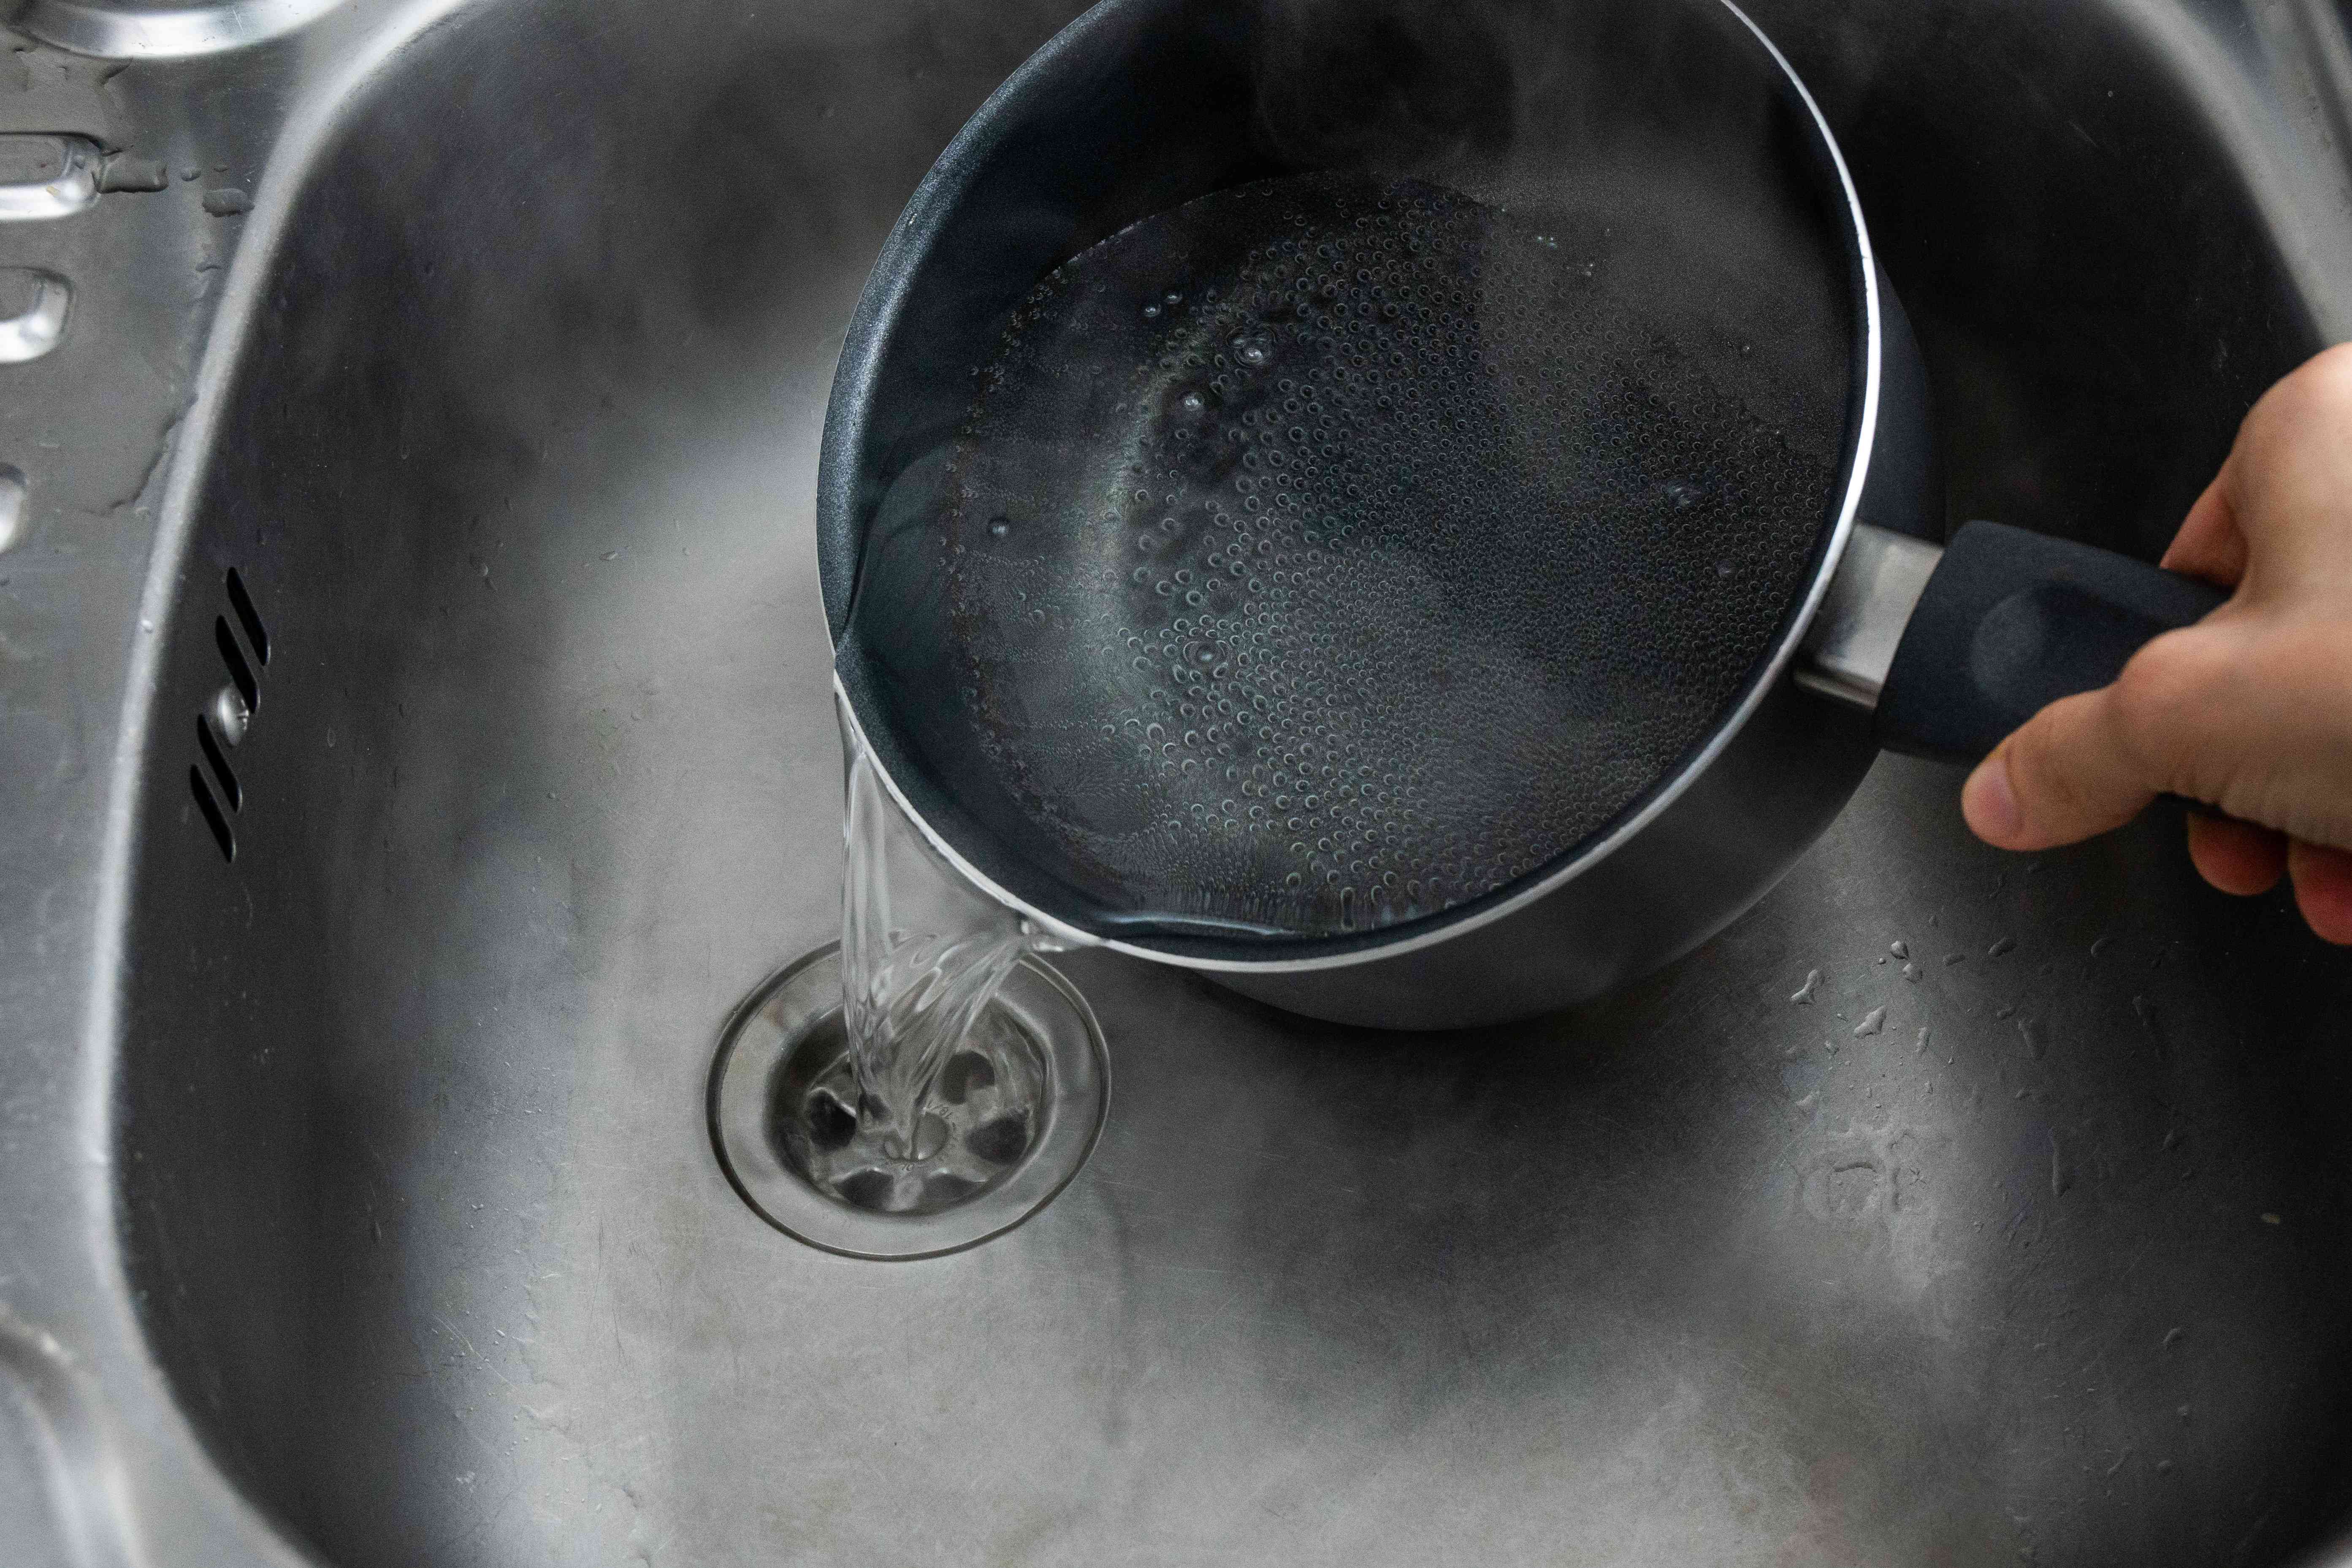 hand pours boiling water down stainless steel sink